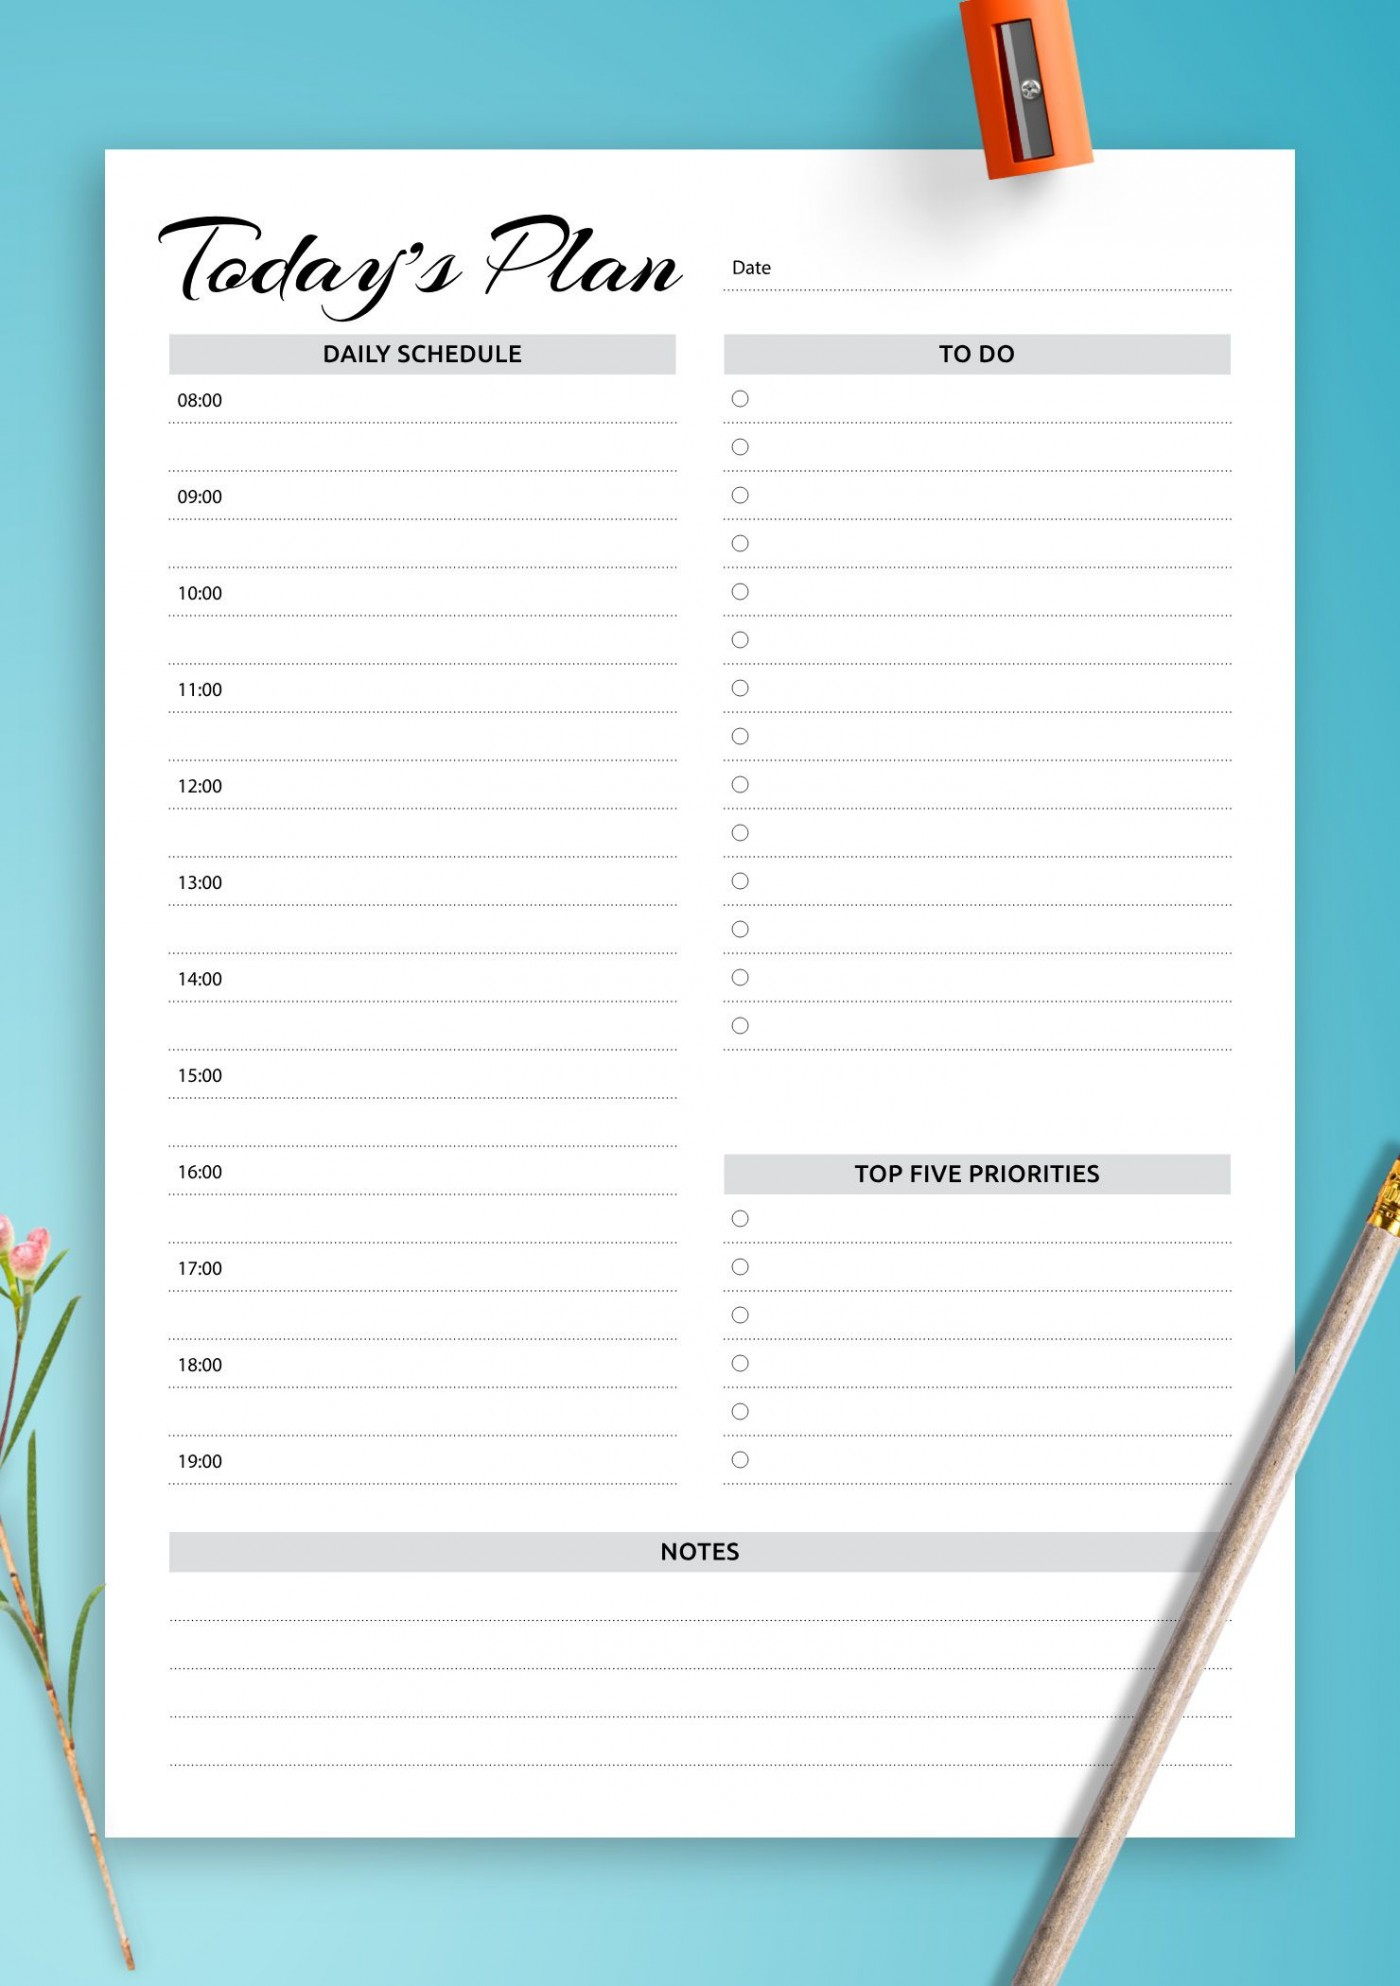 008 Fascinating Printable Daily Schedule Template Photo 1400